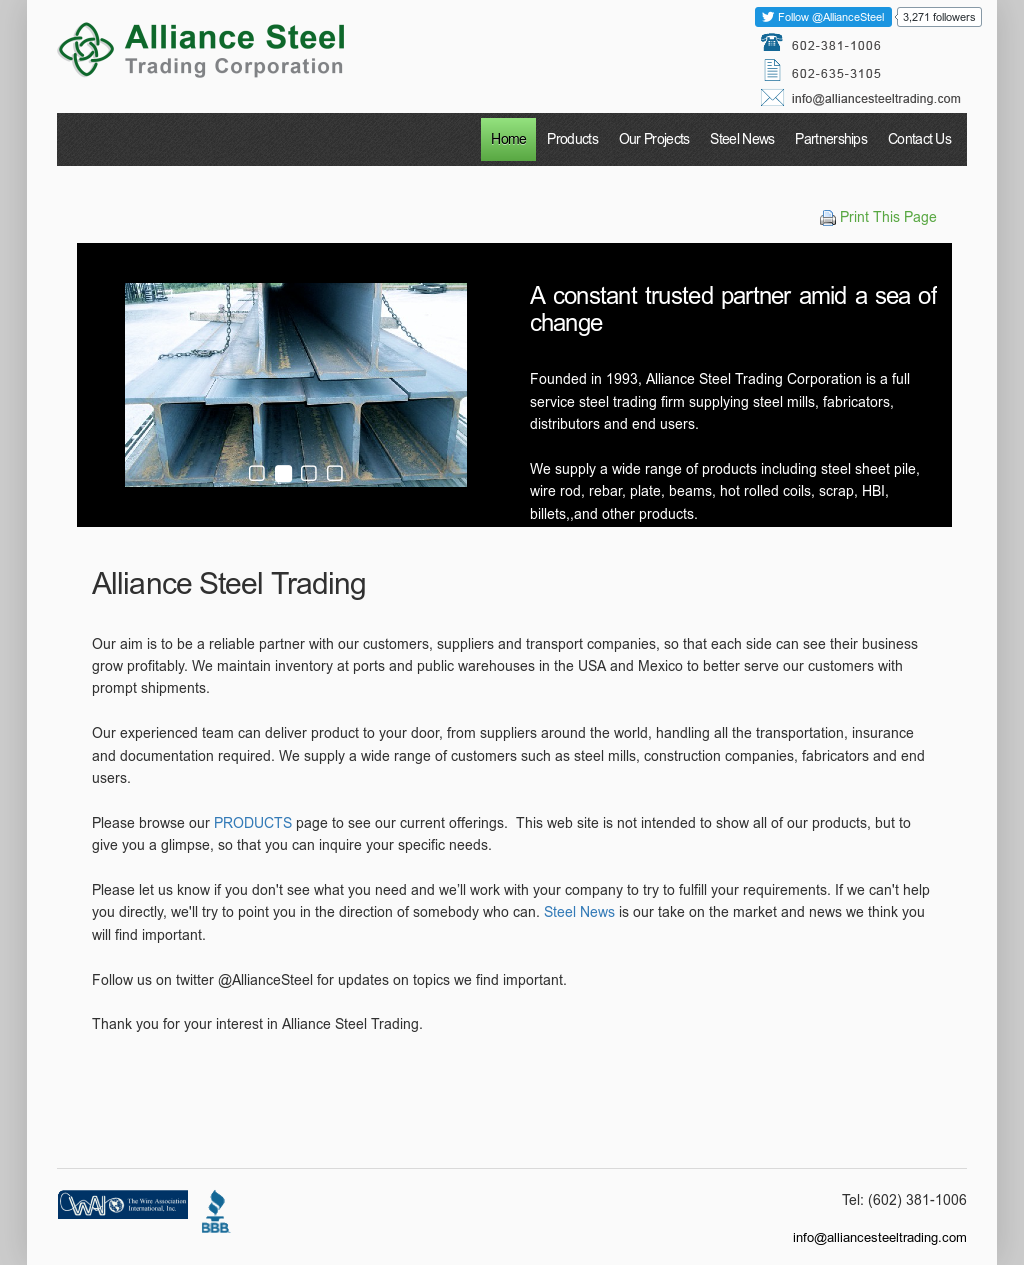 Alliance Steel Trading Competitors, Revenue and Employees